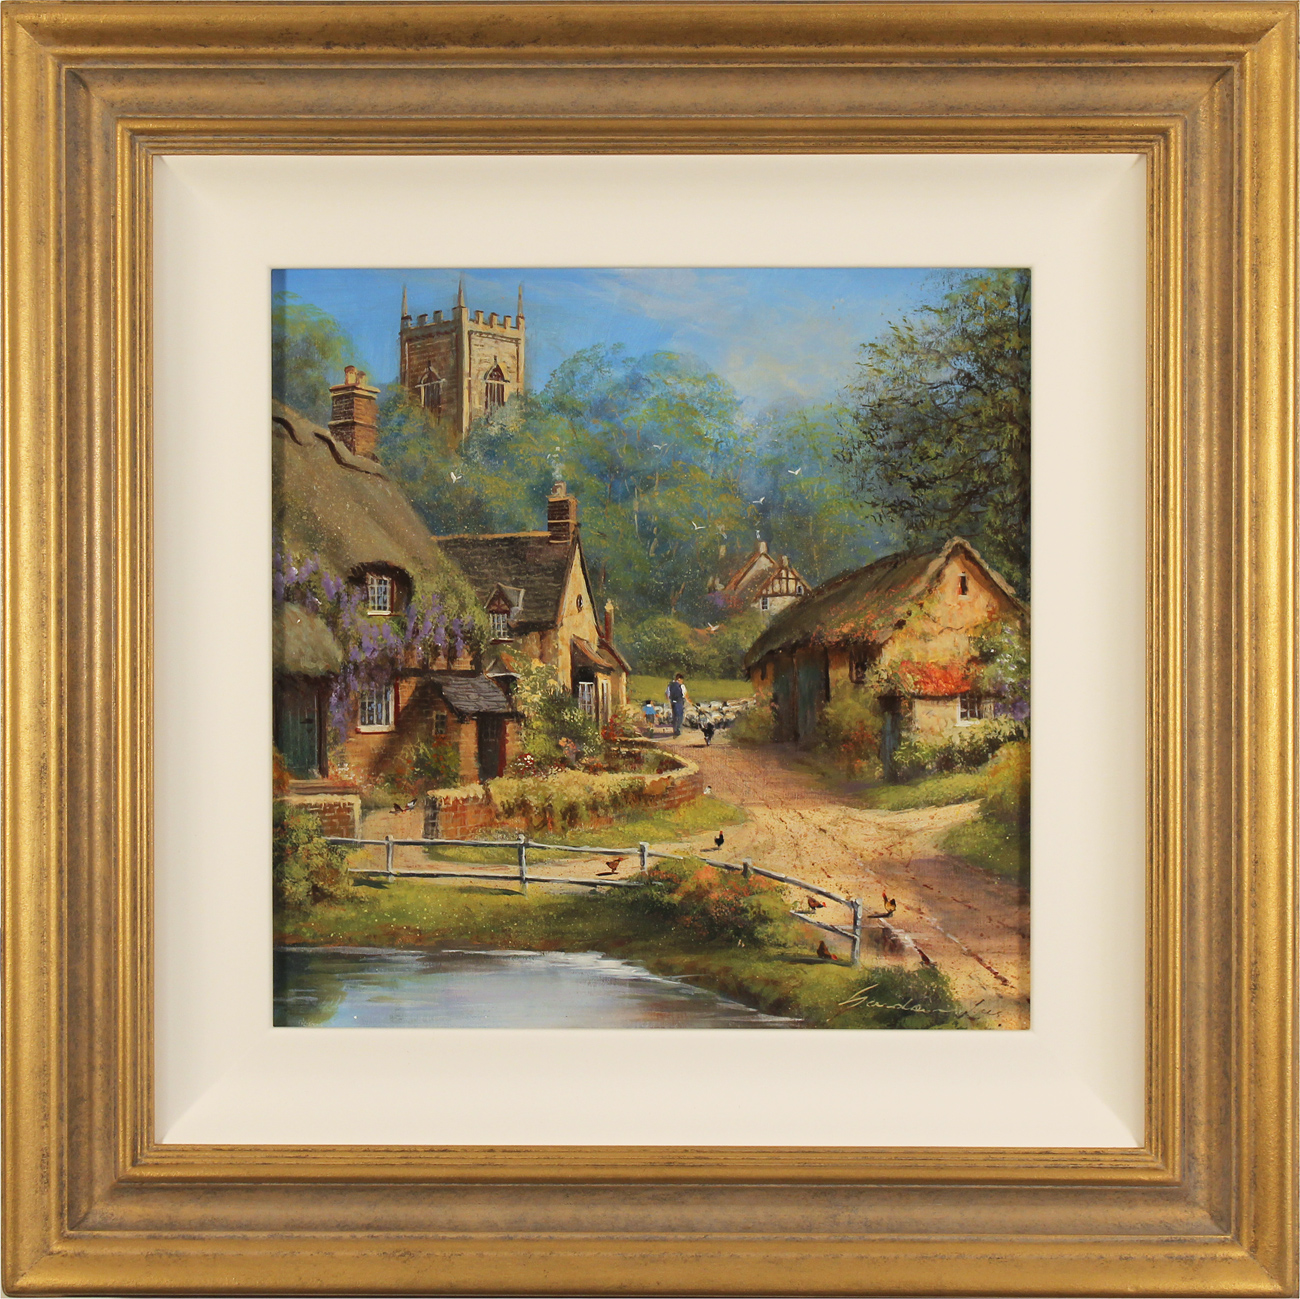 Gordon Lees, Original oil painting on panel, Cotswolds Village in Summer. Click to enlarge